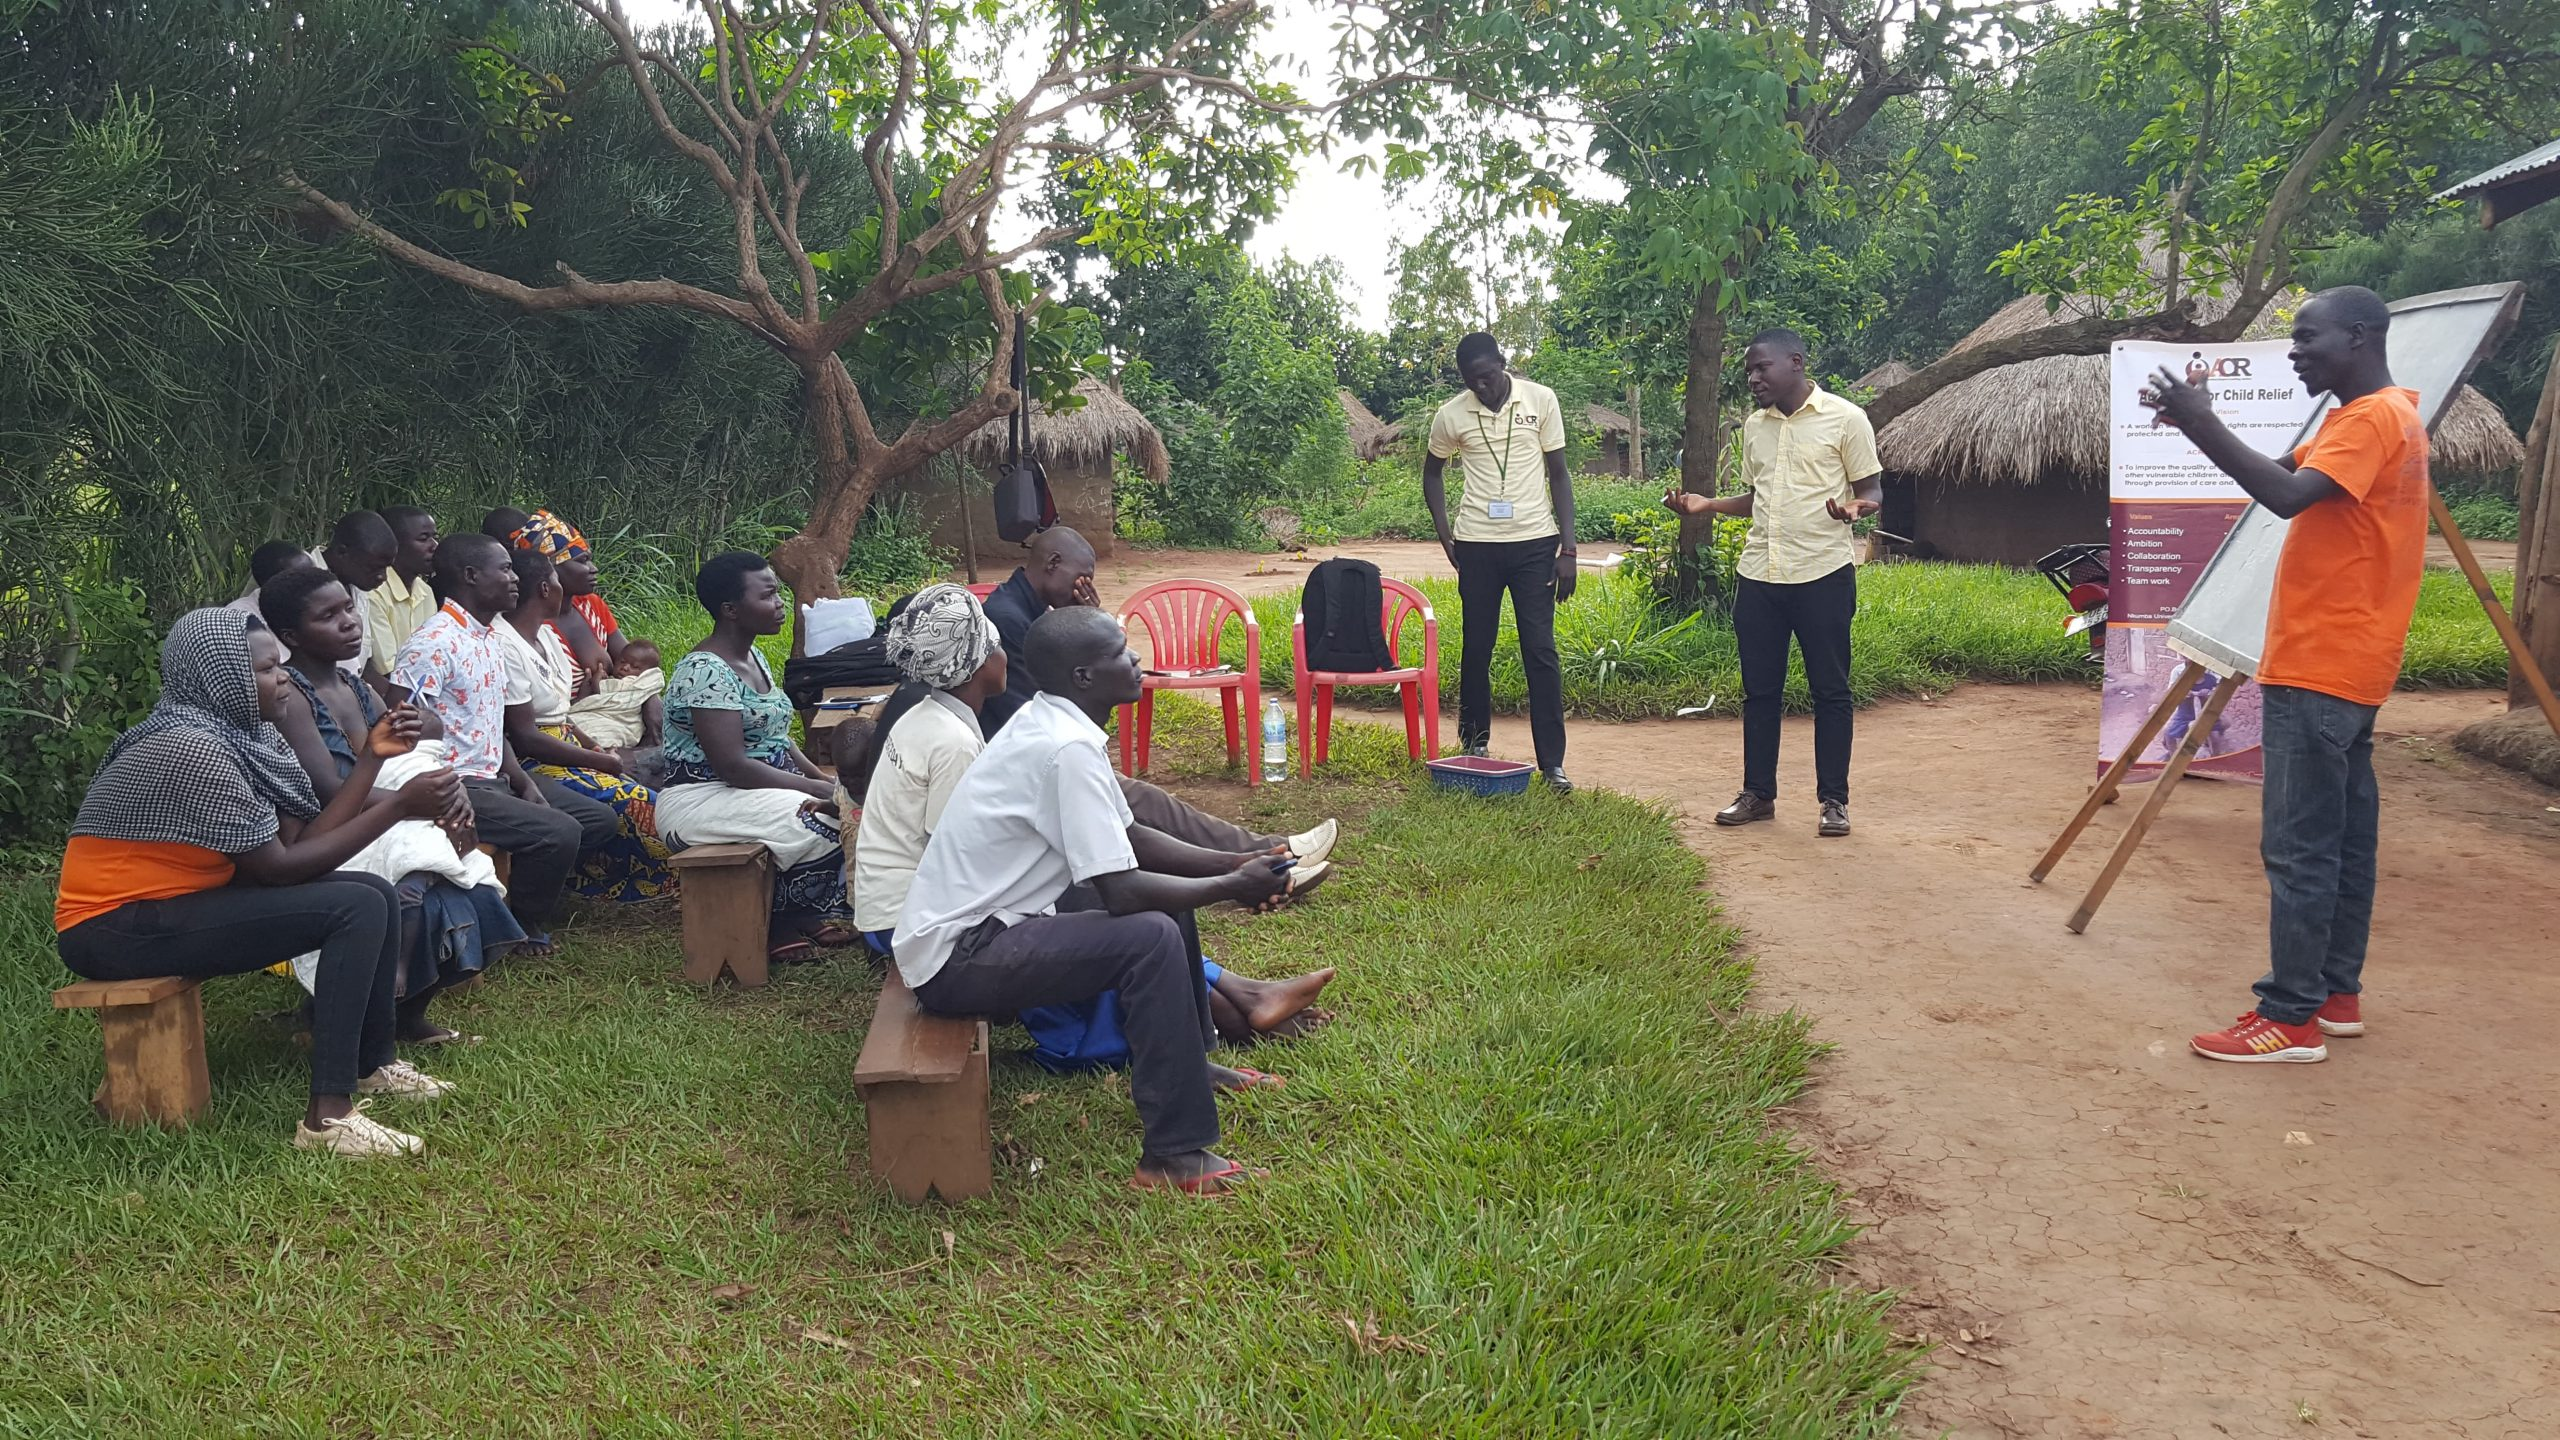 Strengthening Community-Based Child Protection systems